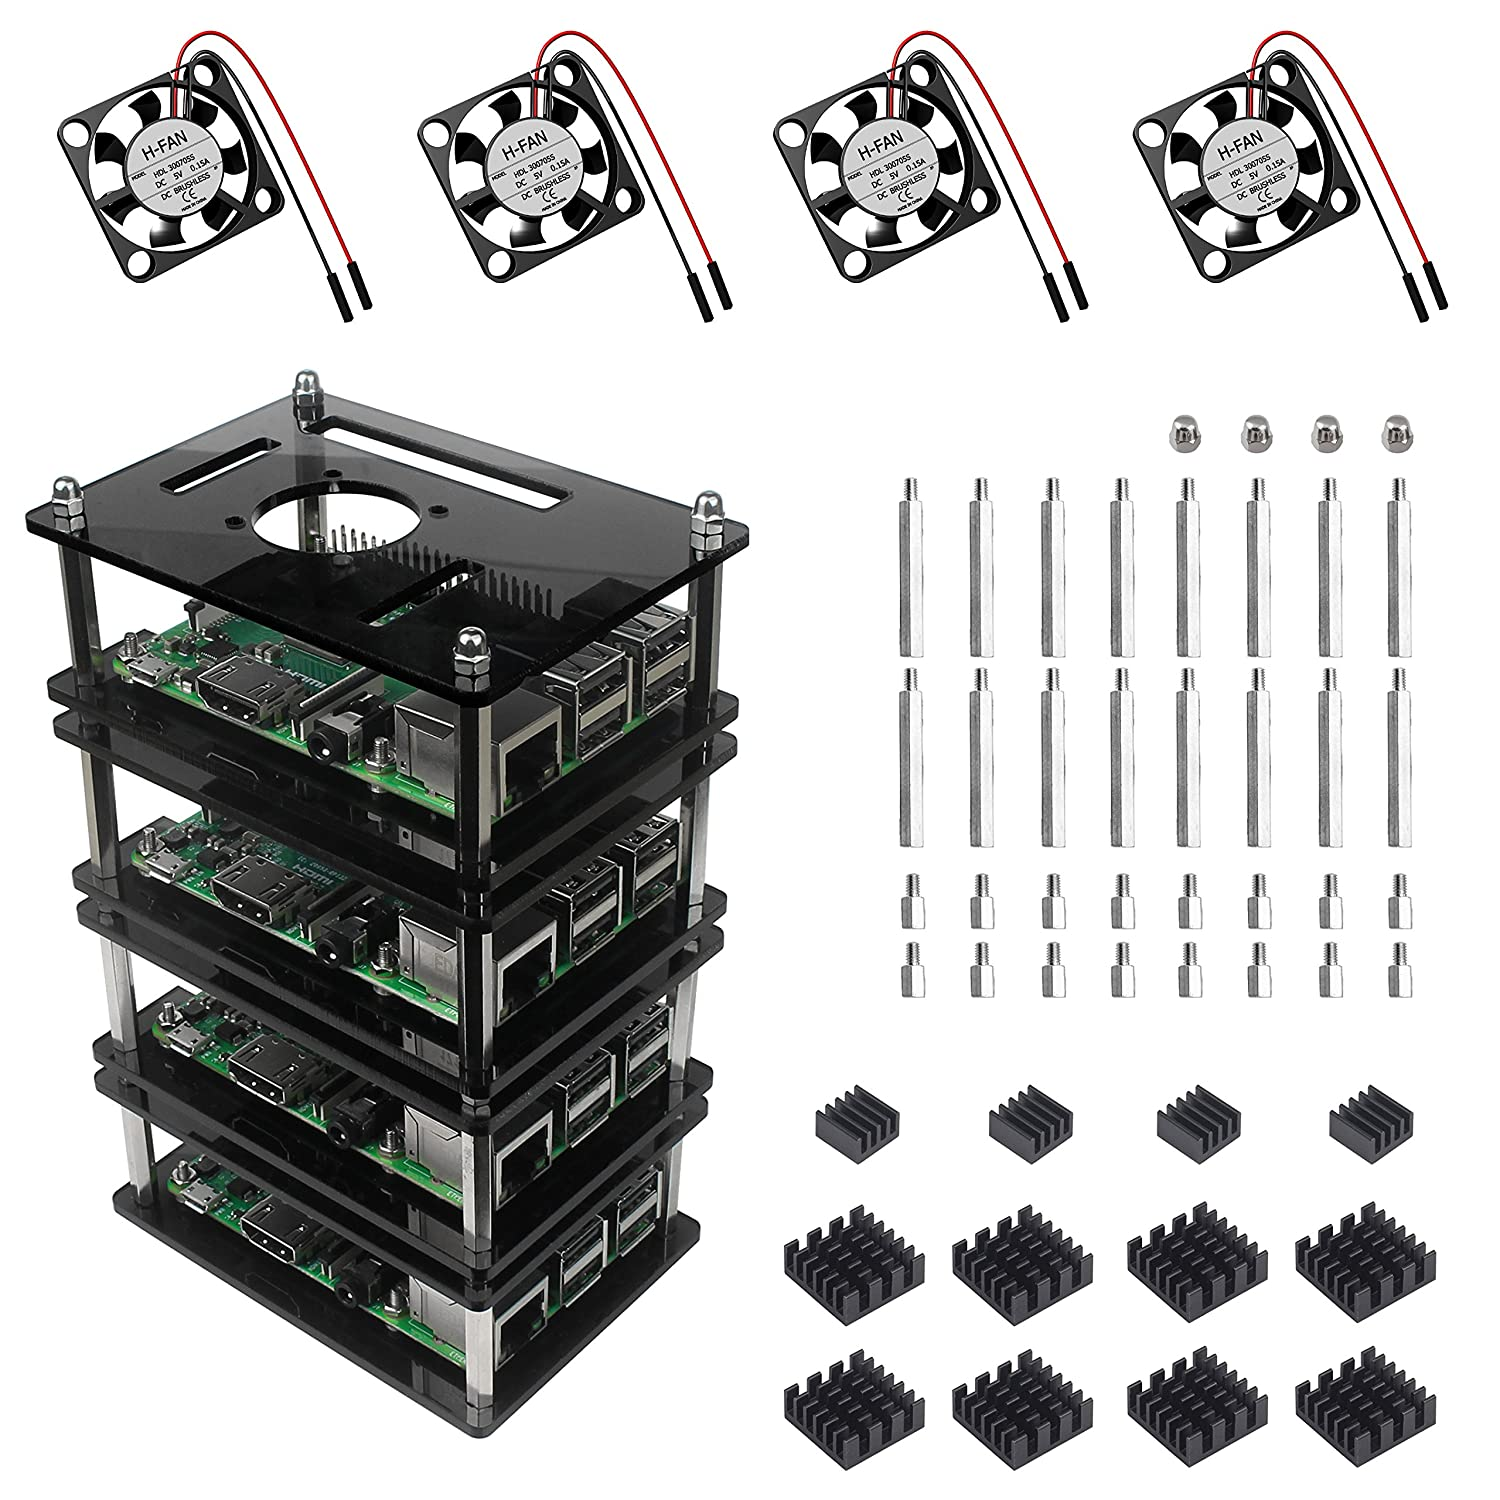 Case 4 Layers Stackable Grey Acrylic Raspberry Pi Case with Fan and Heatsink Jun/_Electronic For Raspberry Pi 3 B